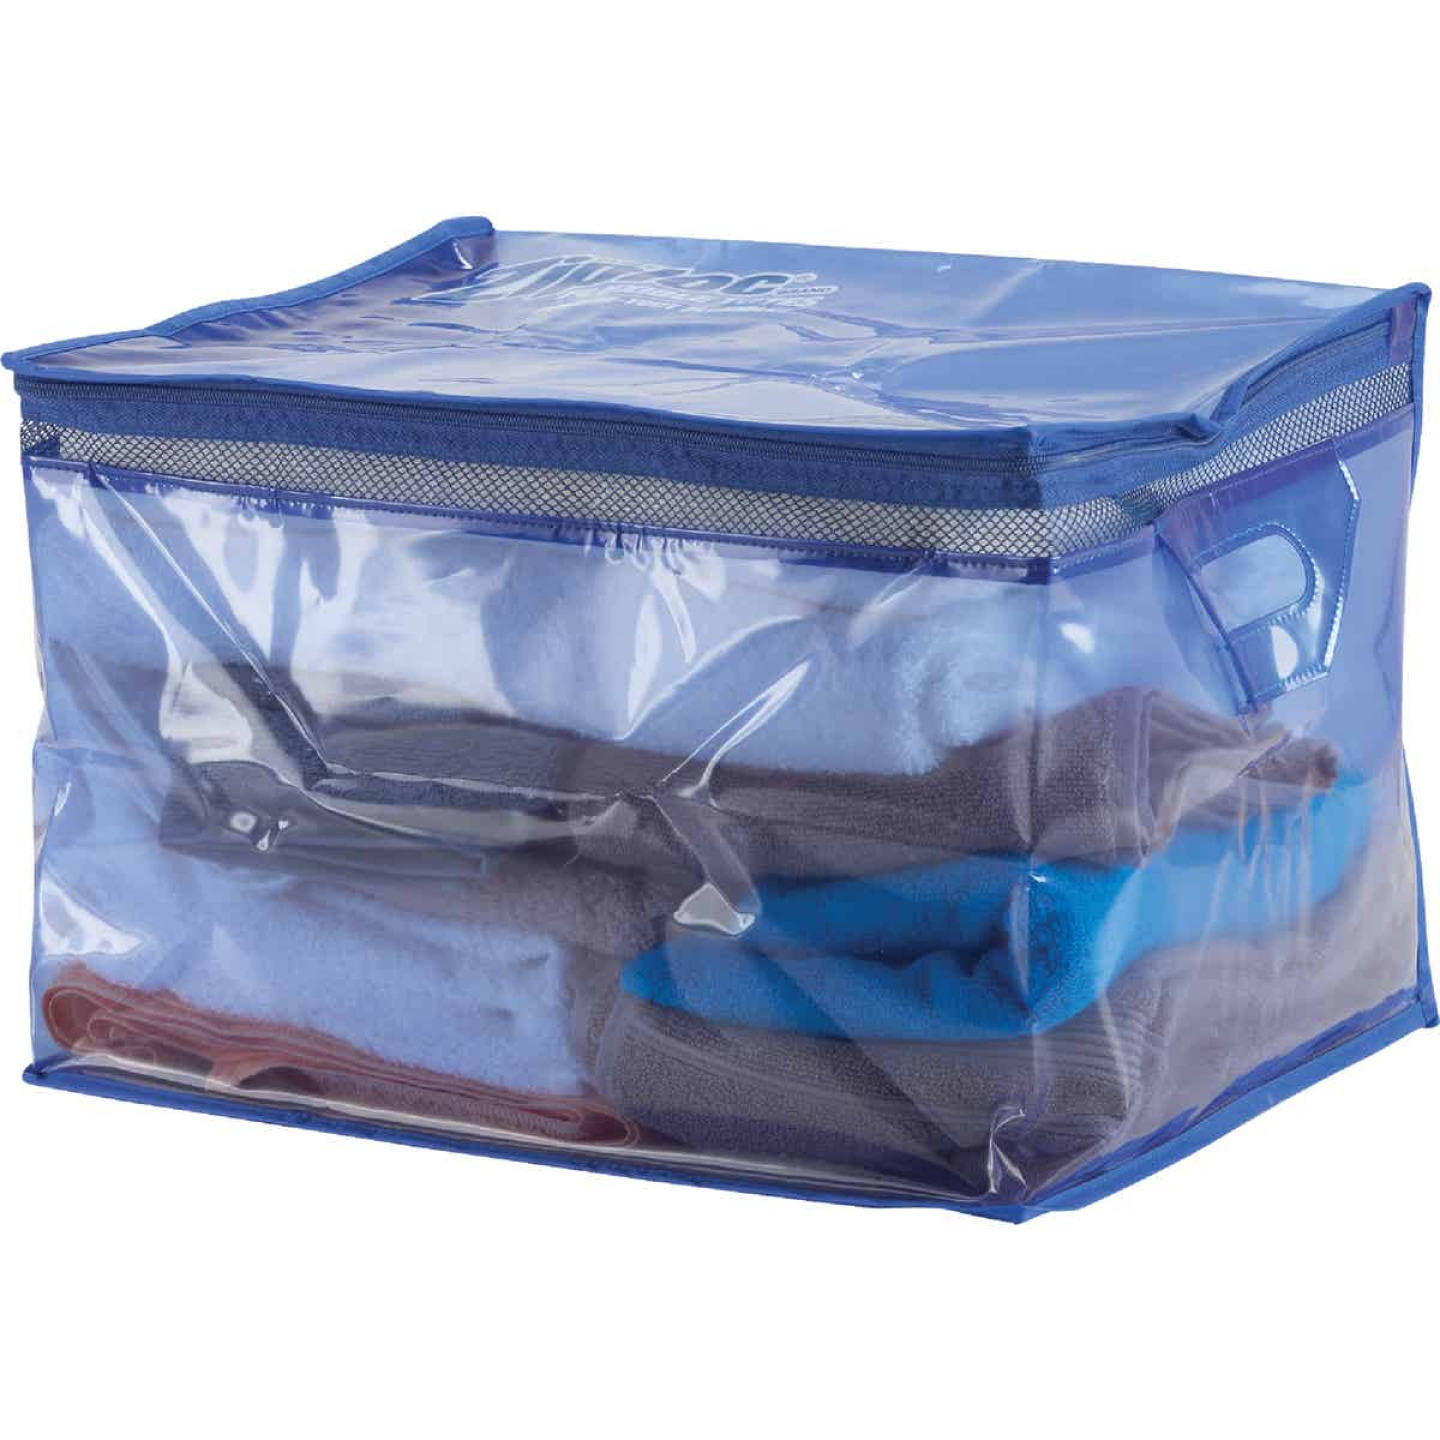 Ziploc Flexible XL 10 Gallon Heavy Duty Clothes Storage Bag Tote Image 3